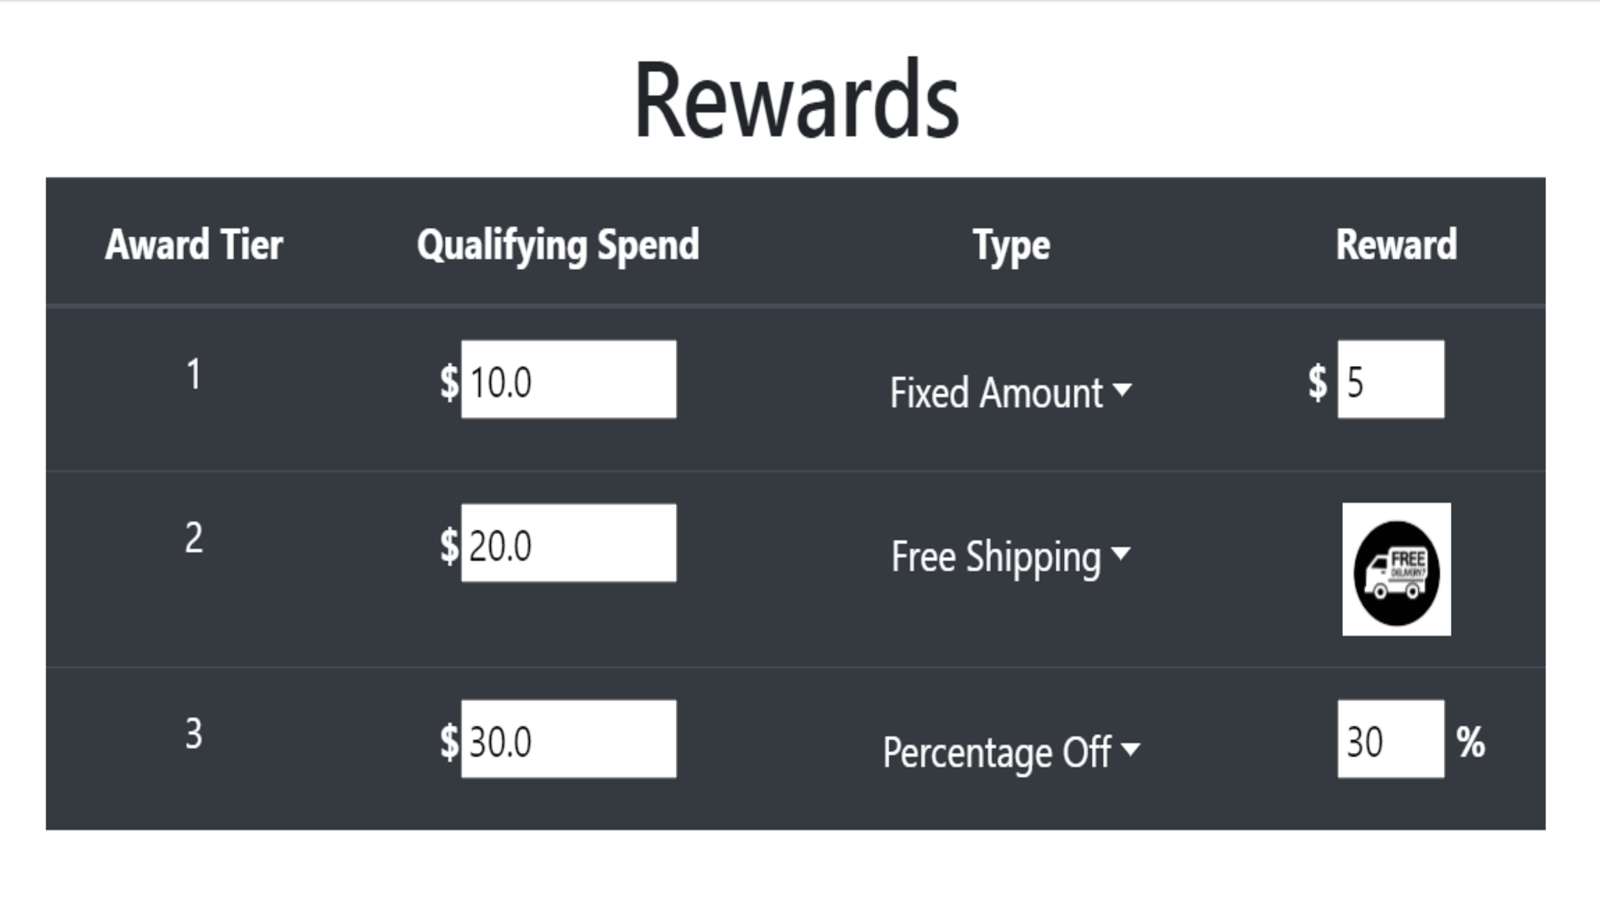 Easy to use interface for merchant to adjust rewards and goals